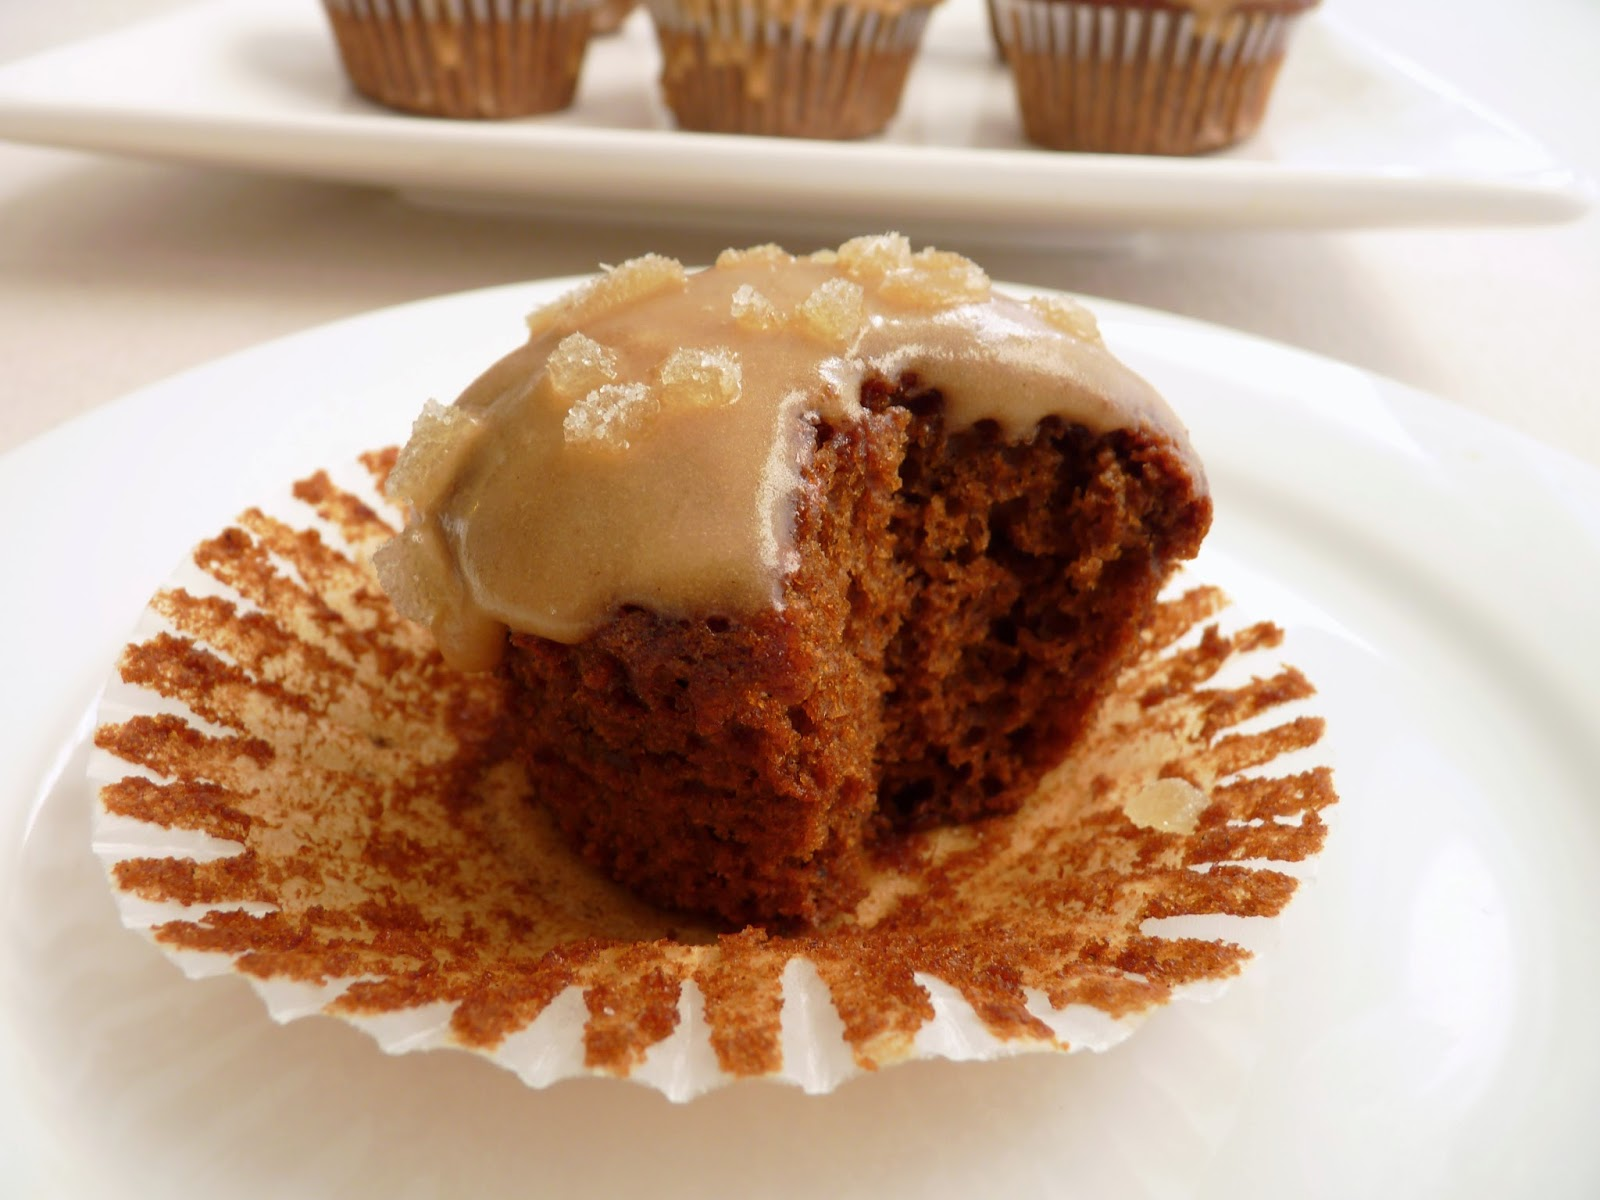 Gingerbread Cupcakes with Coffee Icing